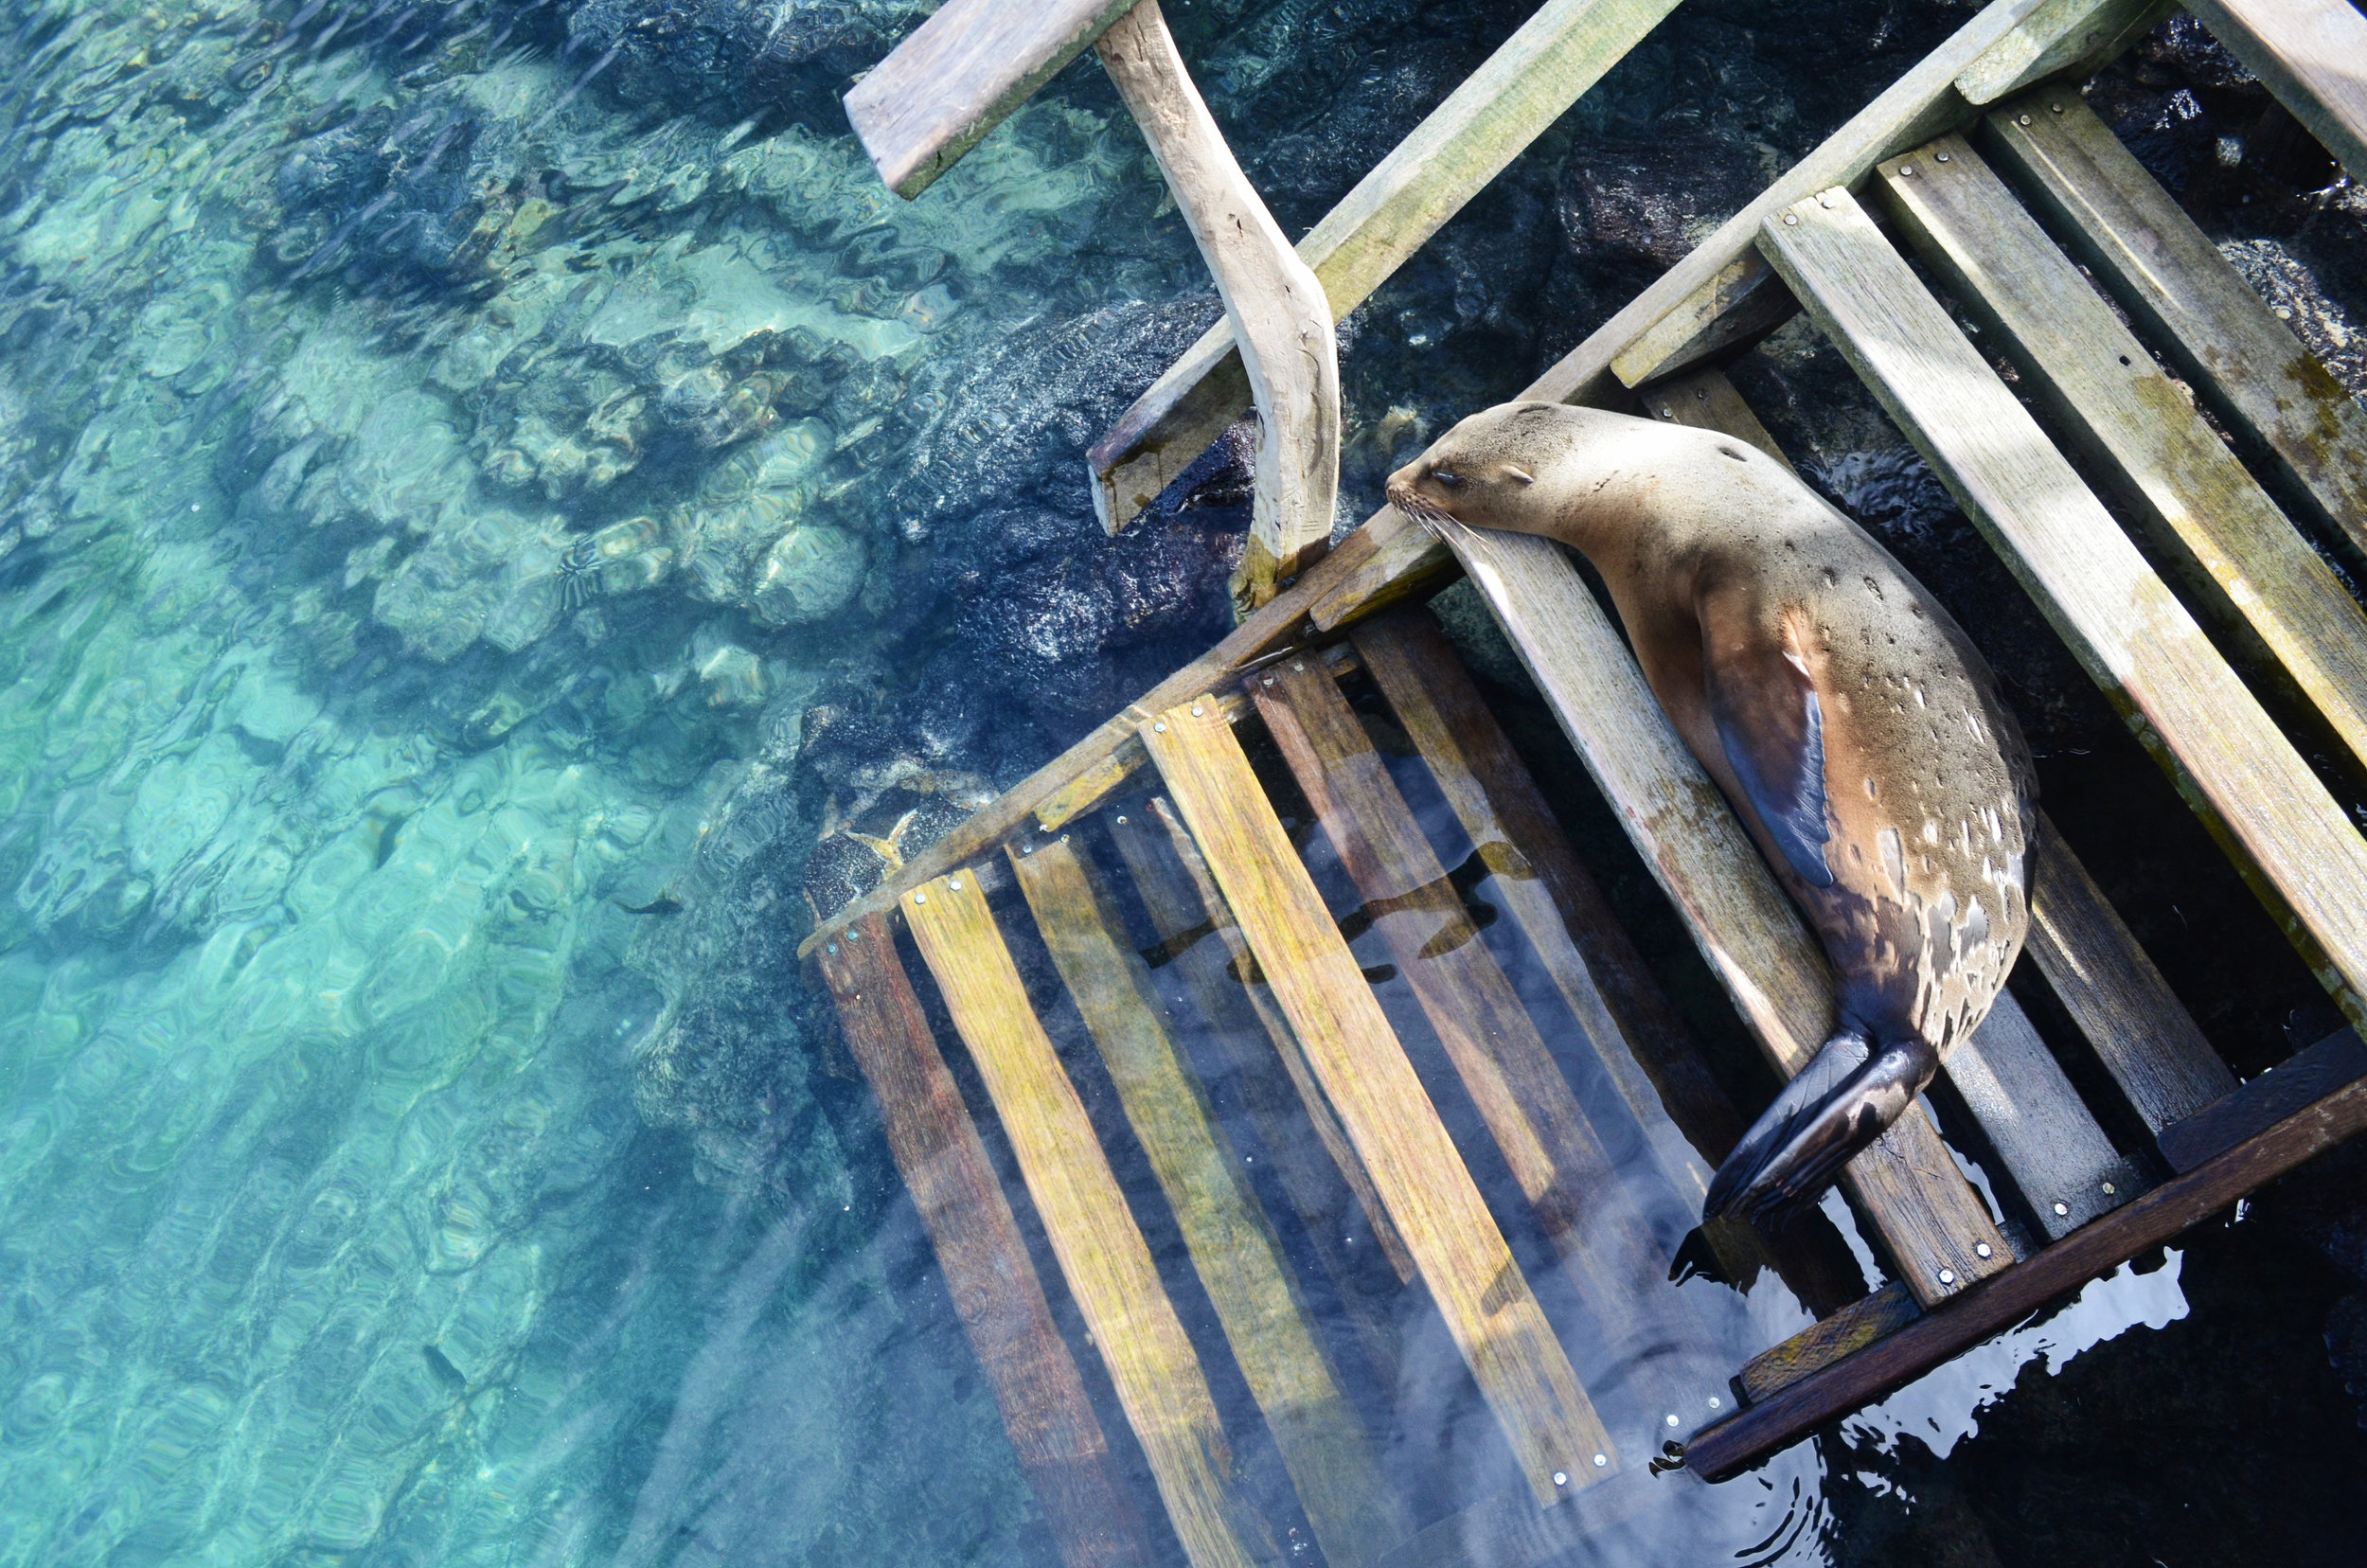 A sea lion takes a break from swimming with snorkelers at Concha la Perla on Isabela Island